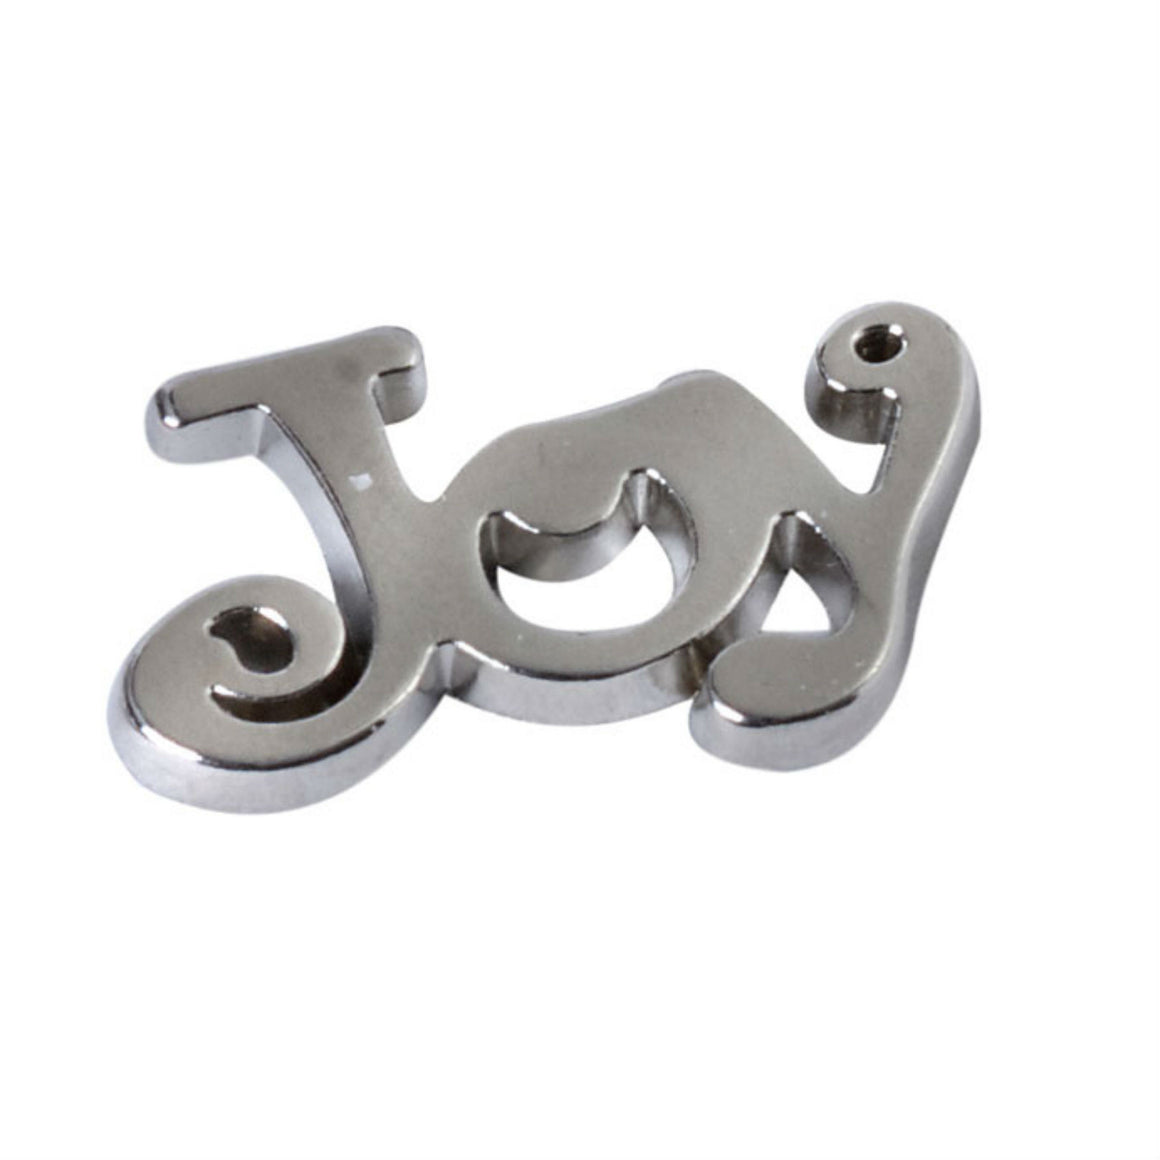 Silver Love, Joy or Noel Table Confetti